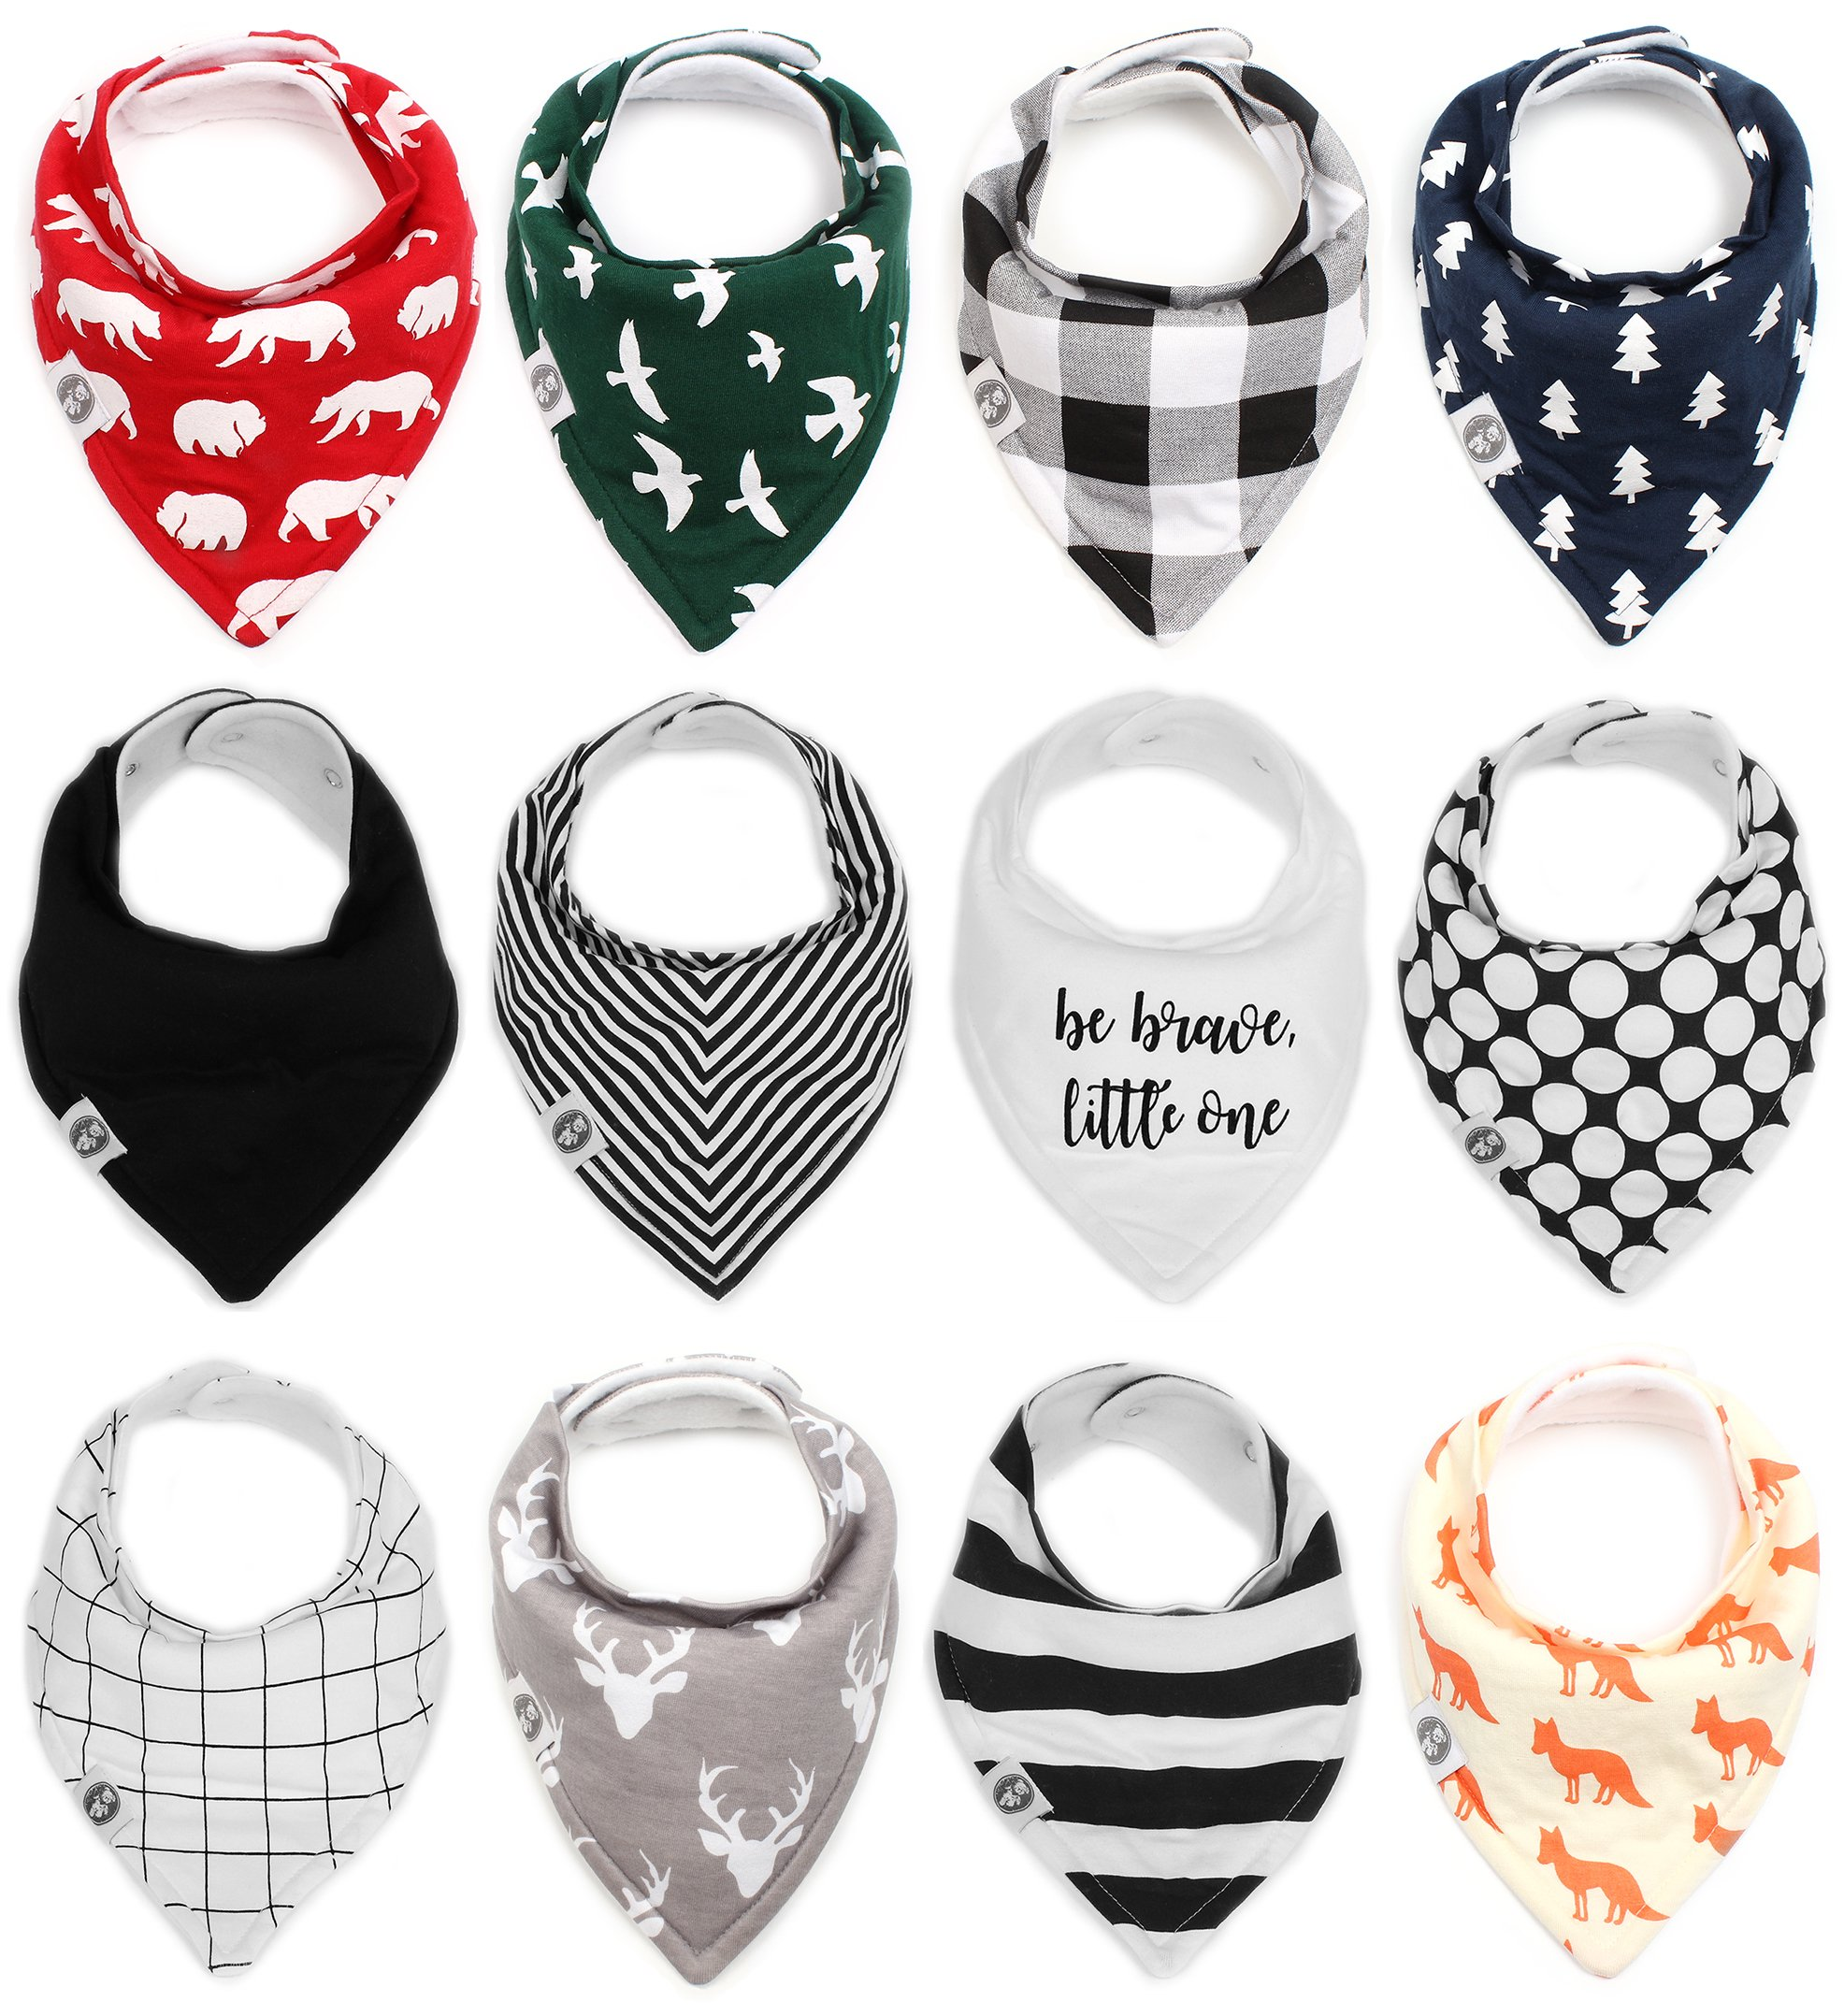 Baby Bandana Drool Bibs for Boys & Girls 12 Pack''Forest Friends Set'' by Mumby